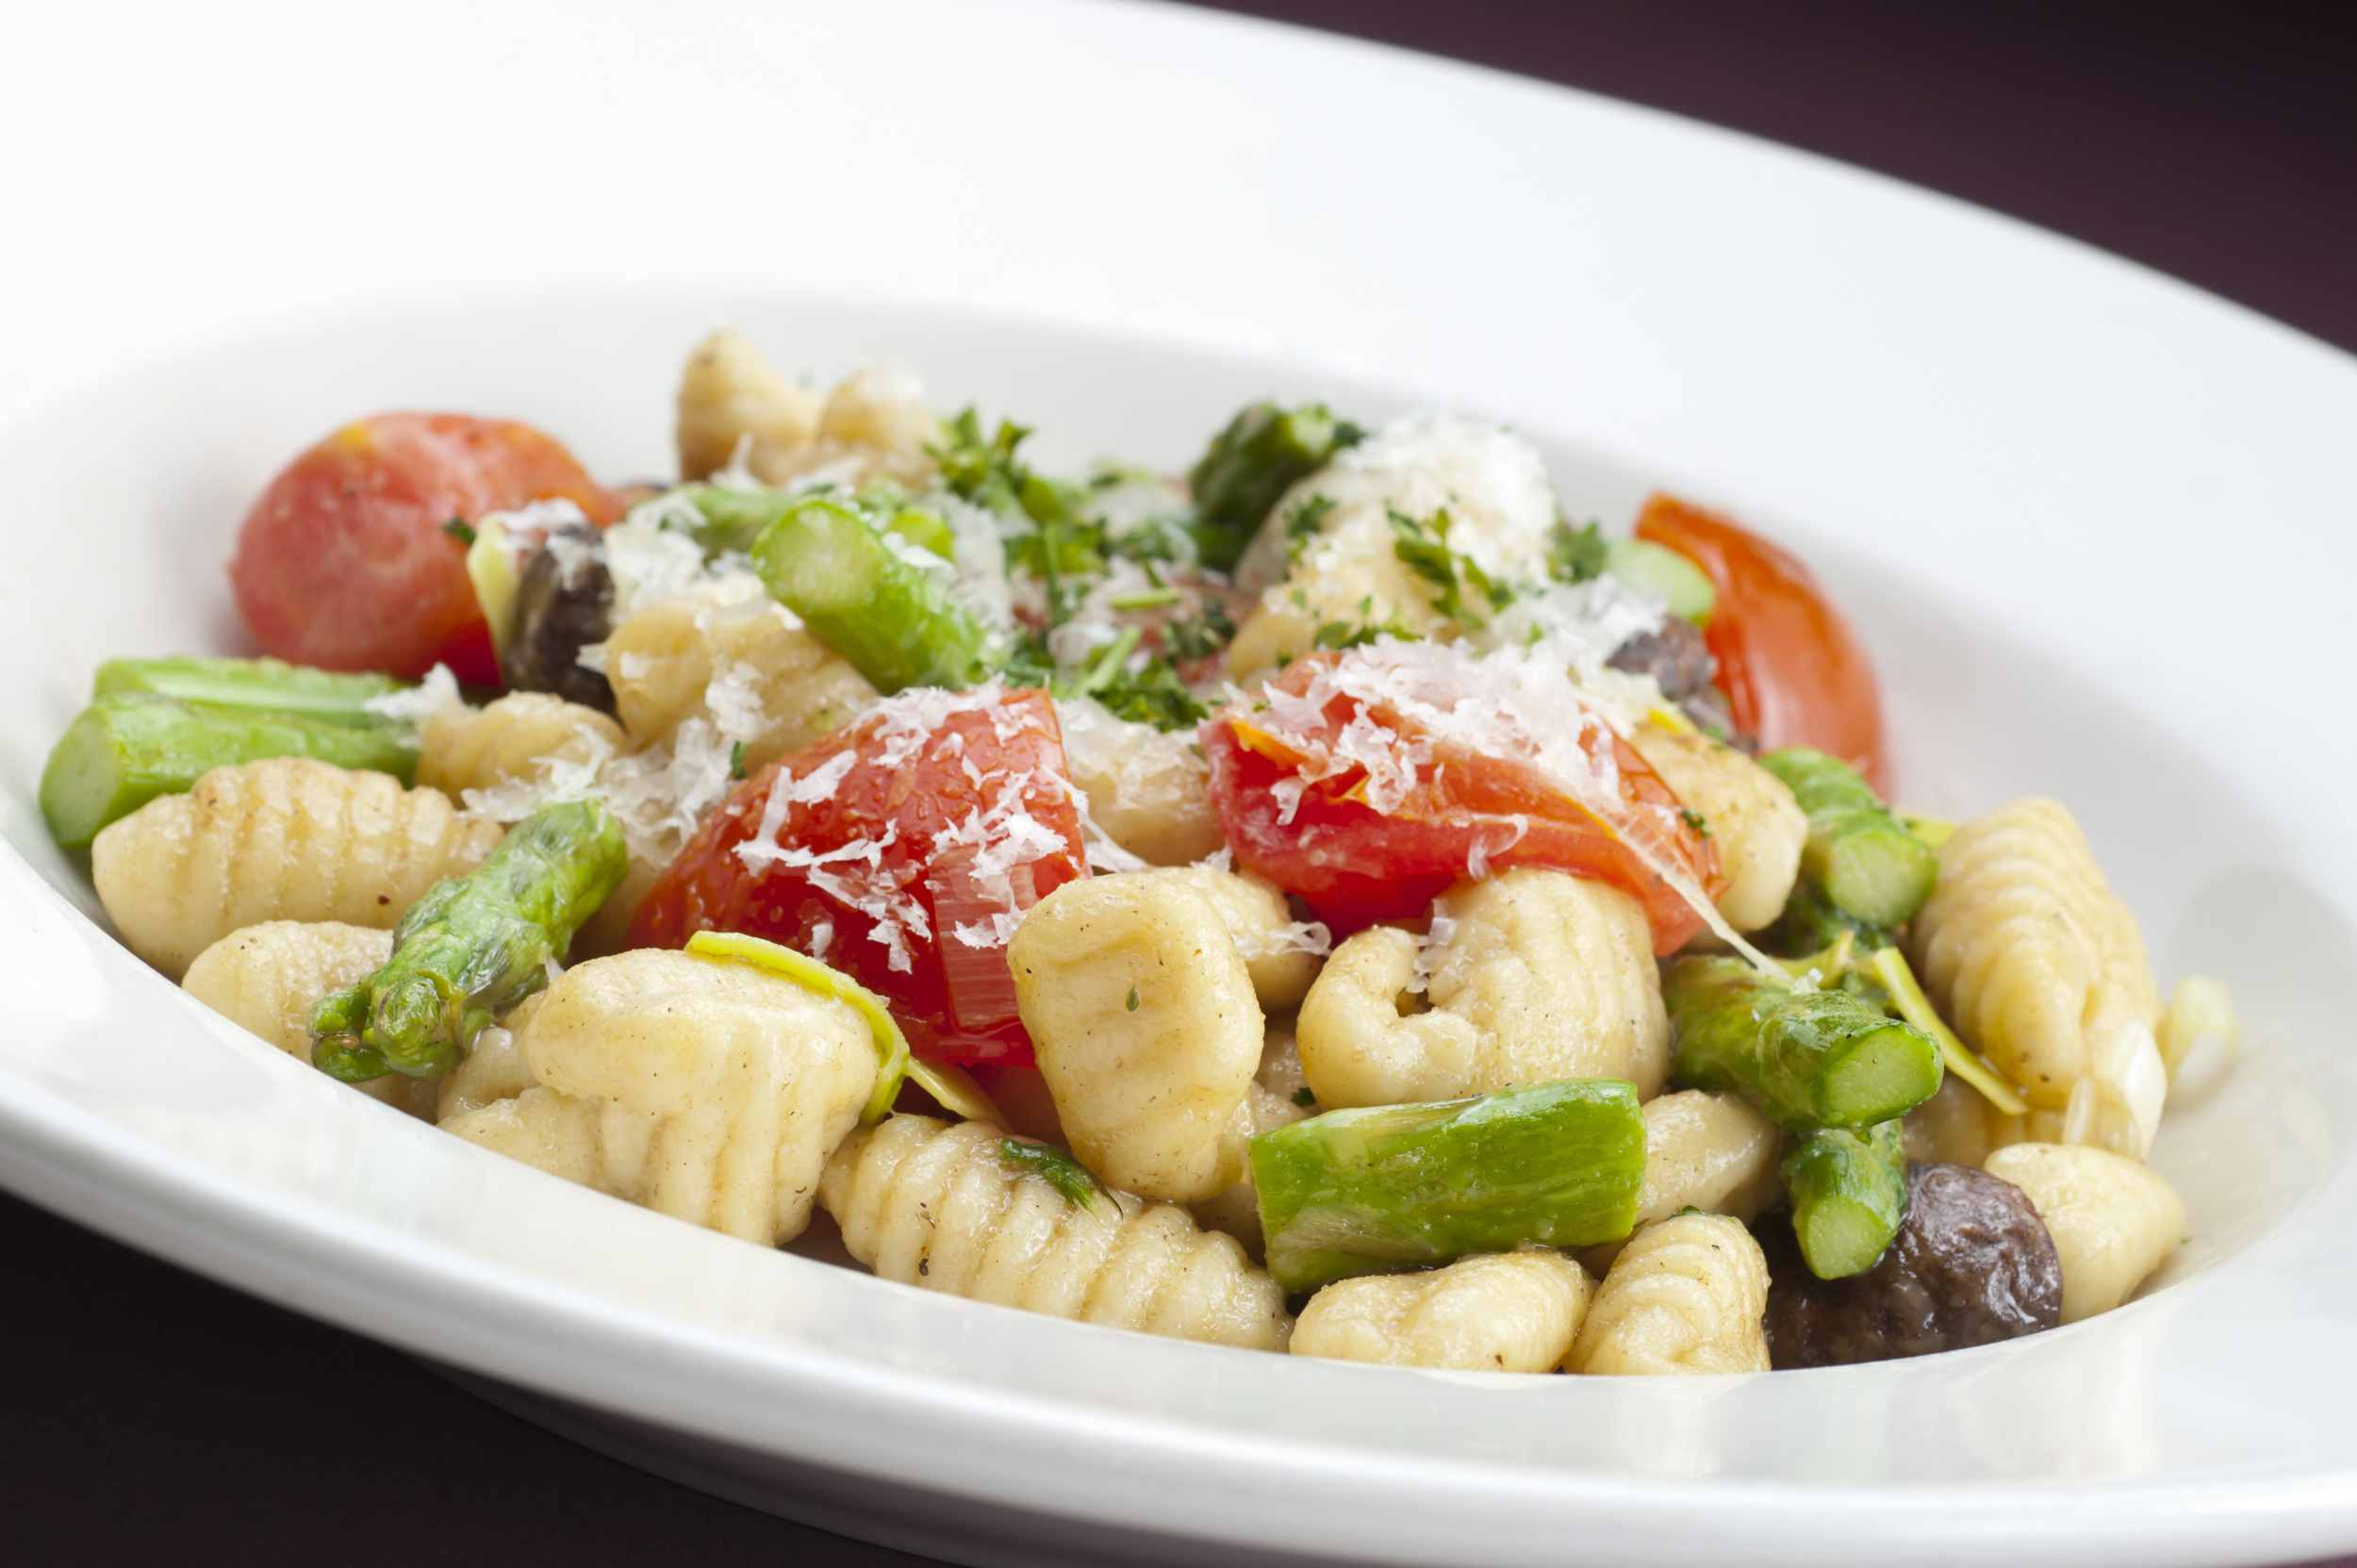 Gnocchi with asparagus and tomatoes